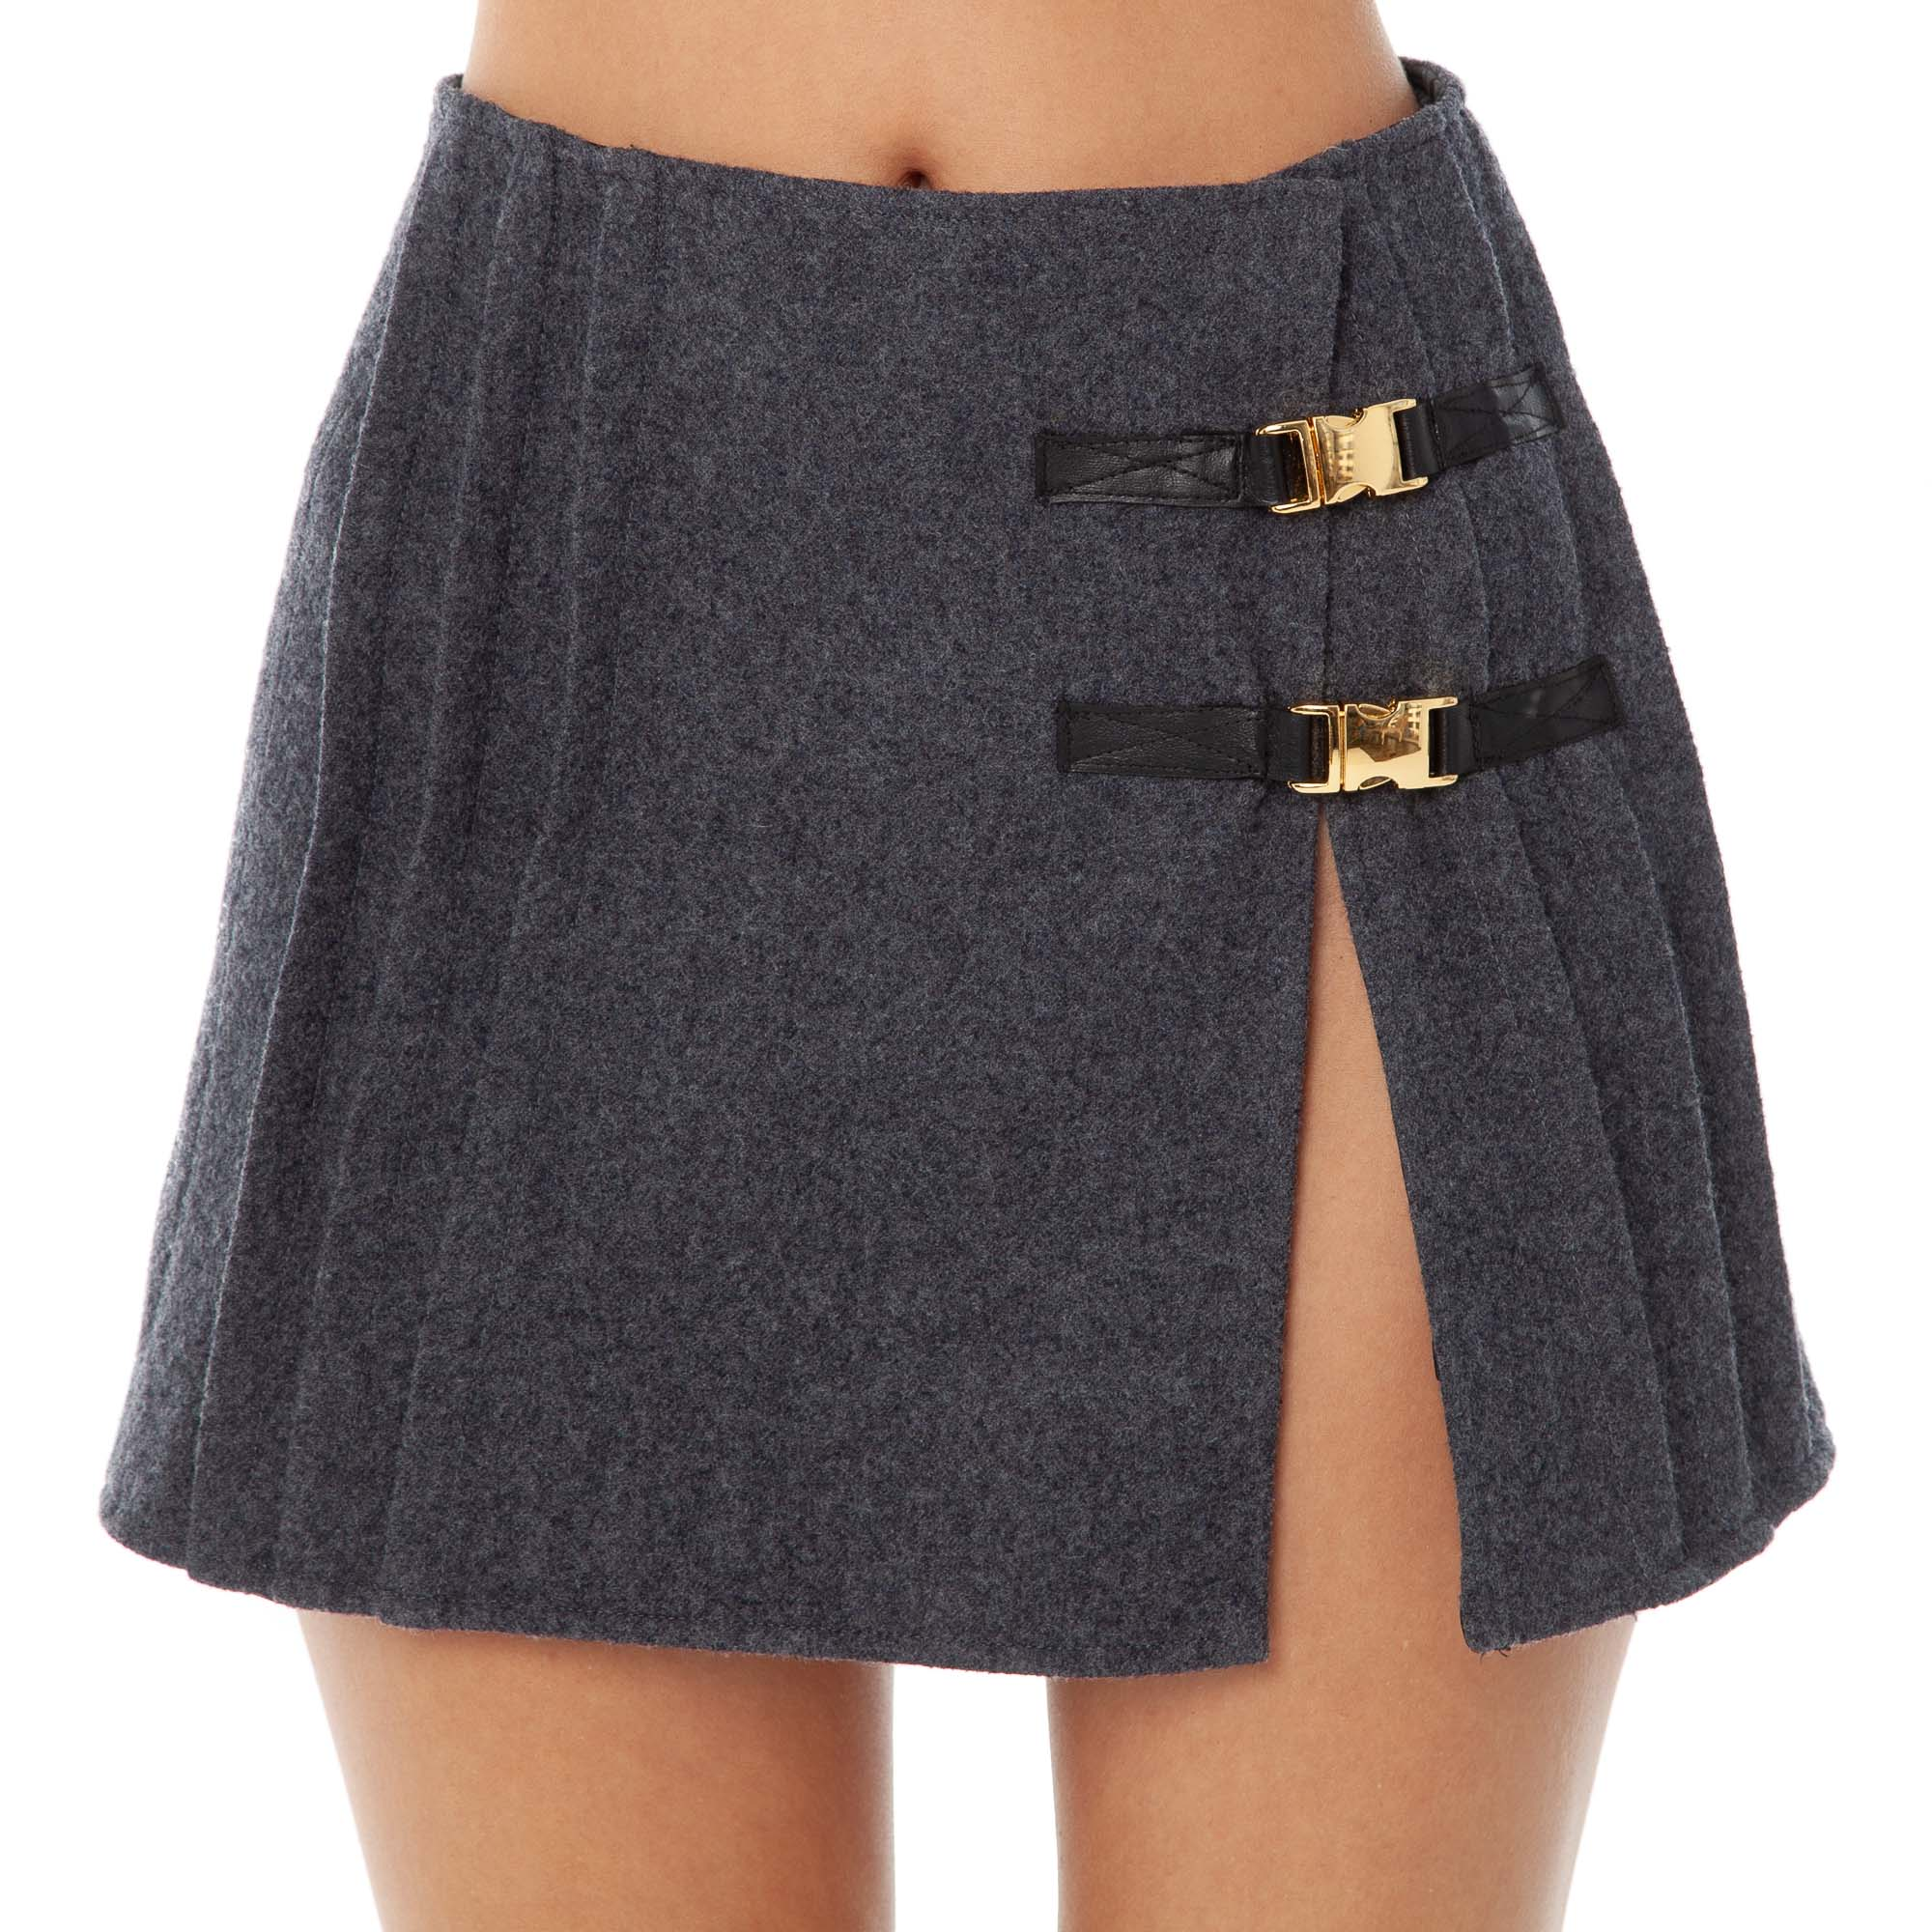 Are You Am I - Emina Skirt **charcoal